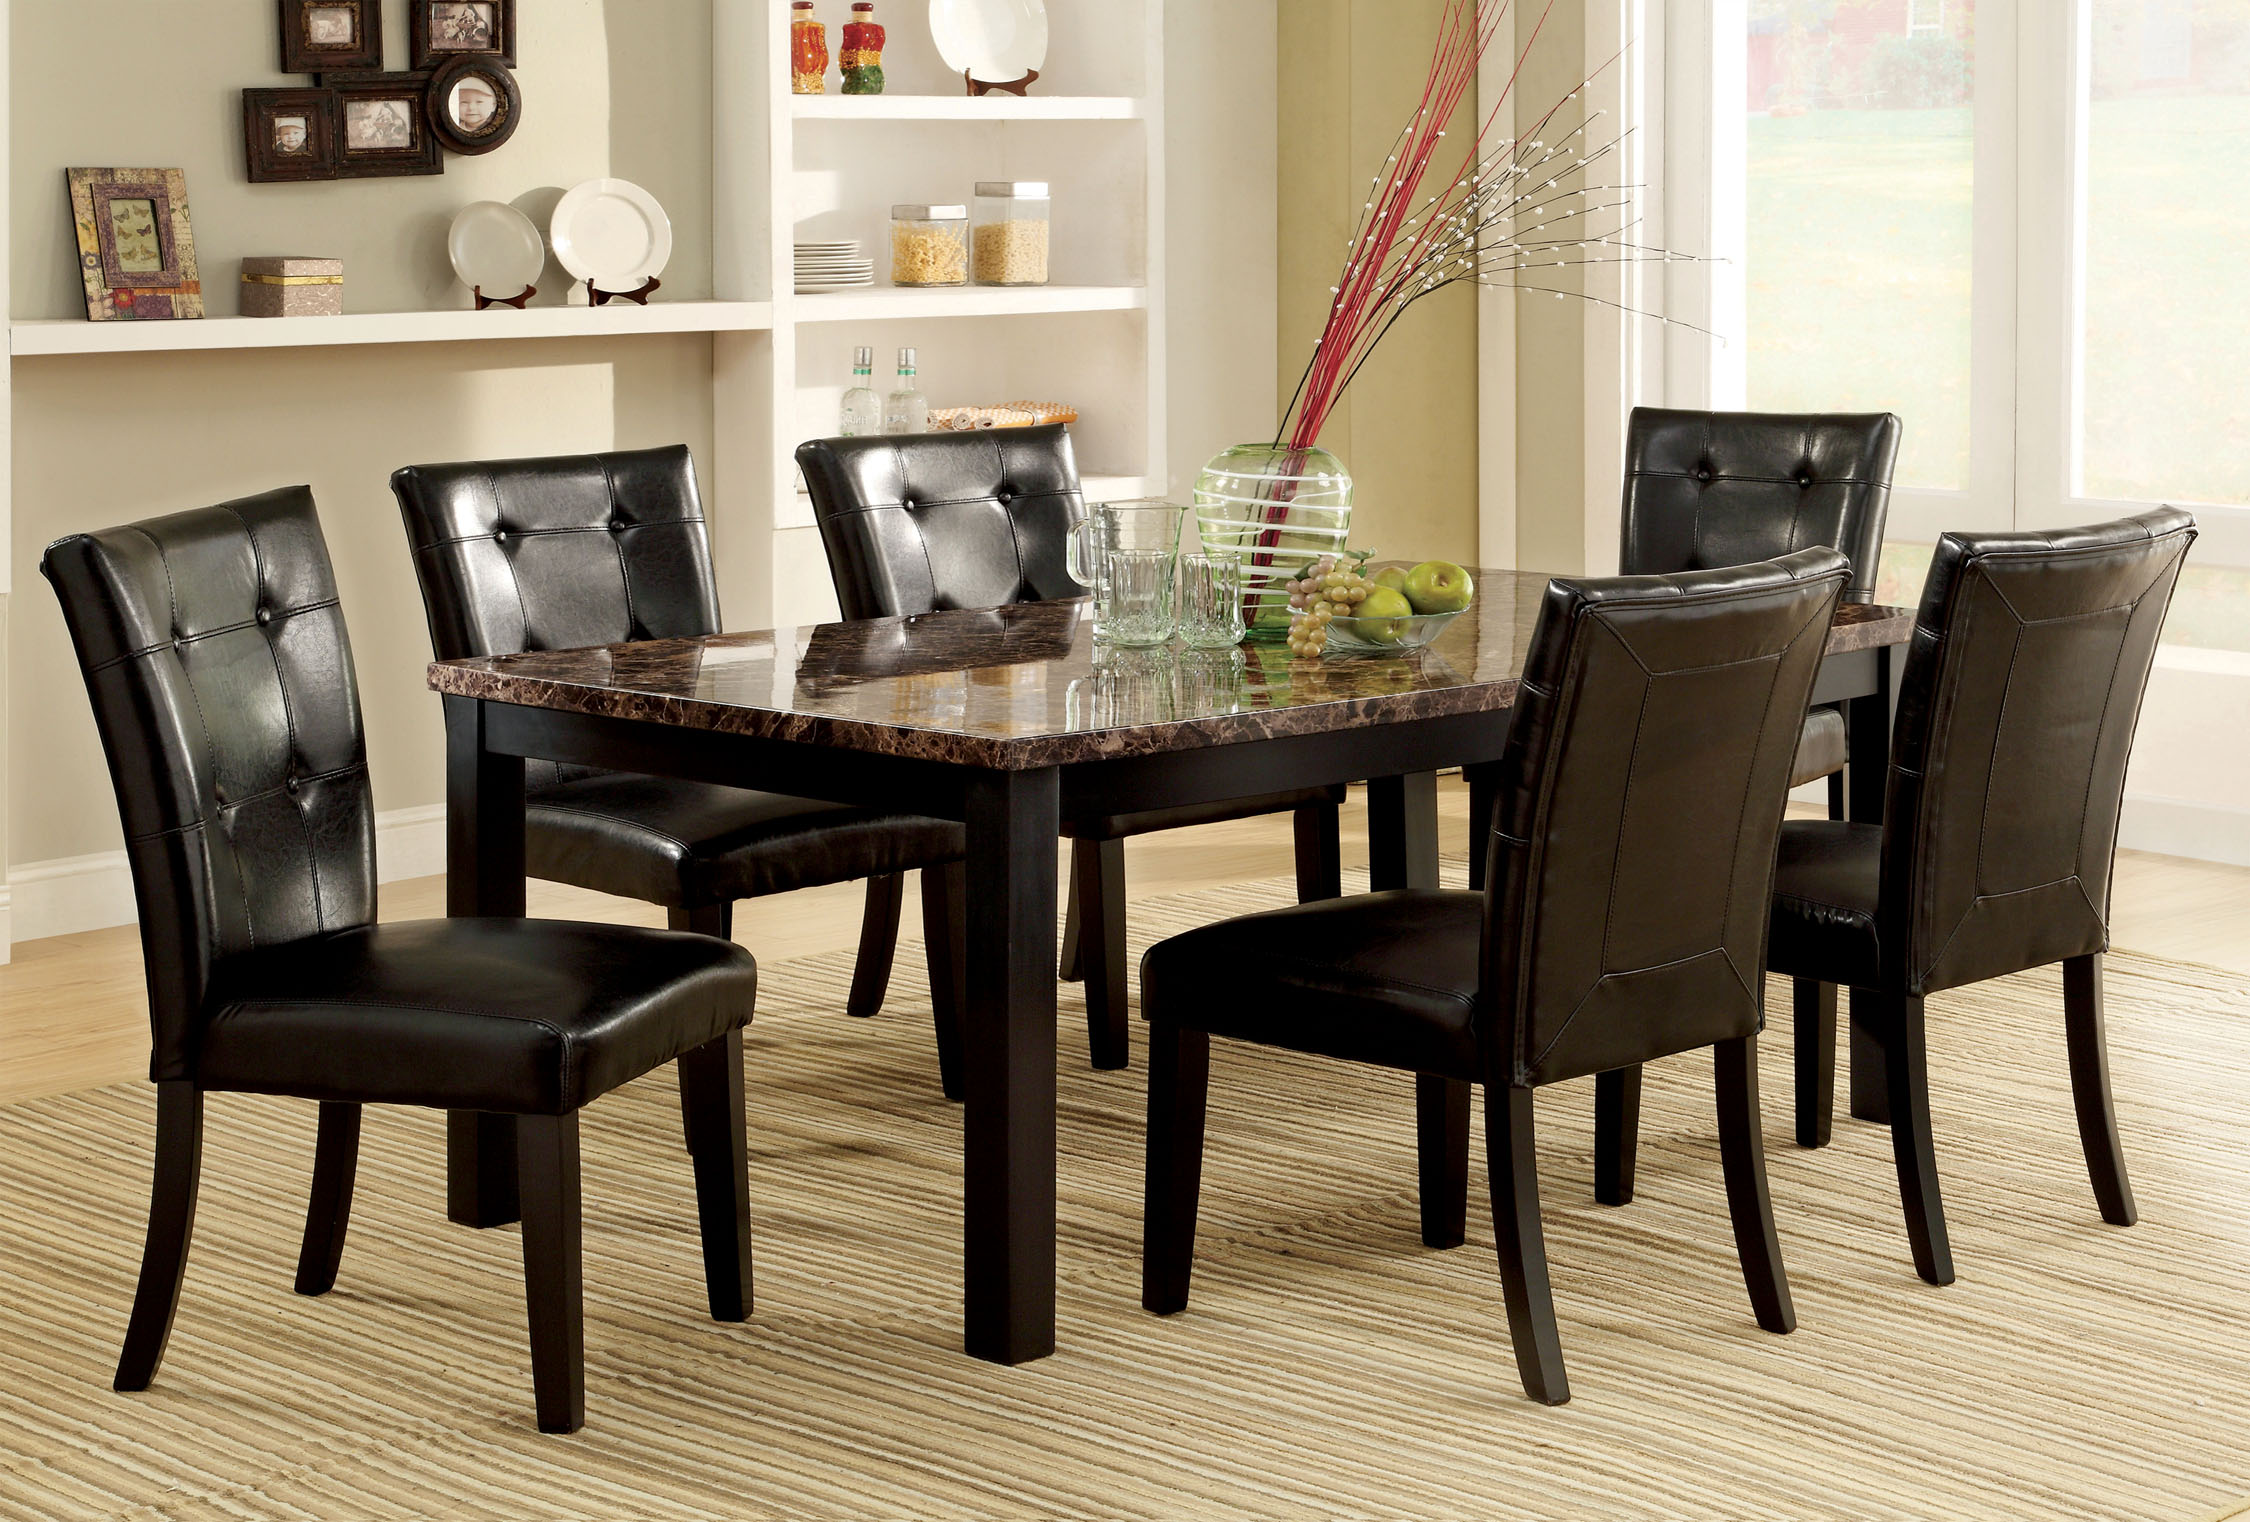 p P espresso kitchen table set Furniture of America Benning Heights 7 Piece Faux Marble Dining Set Home Furniture Dining Kitchen Furniture Dining Sets Collections